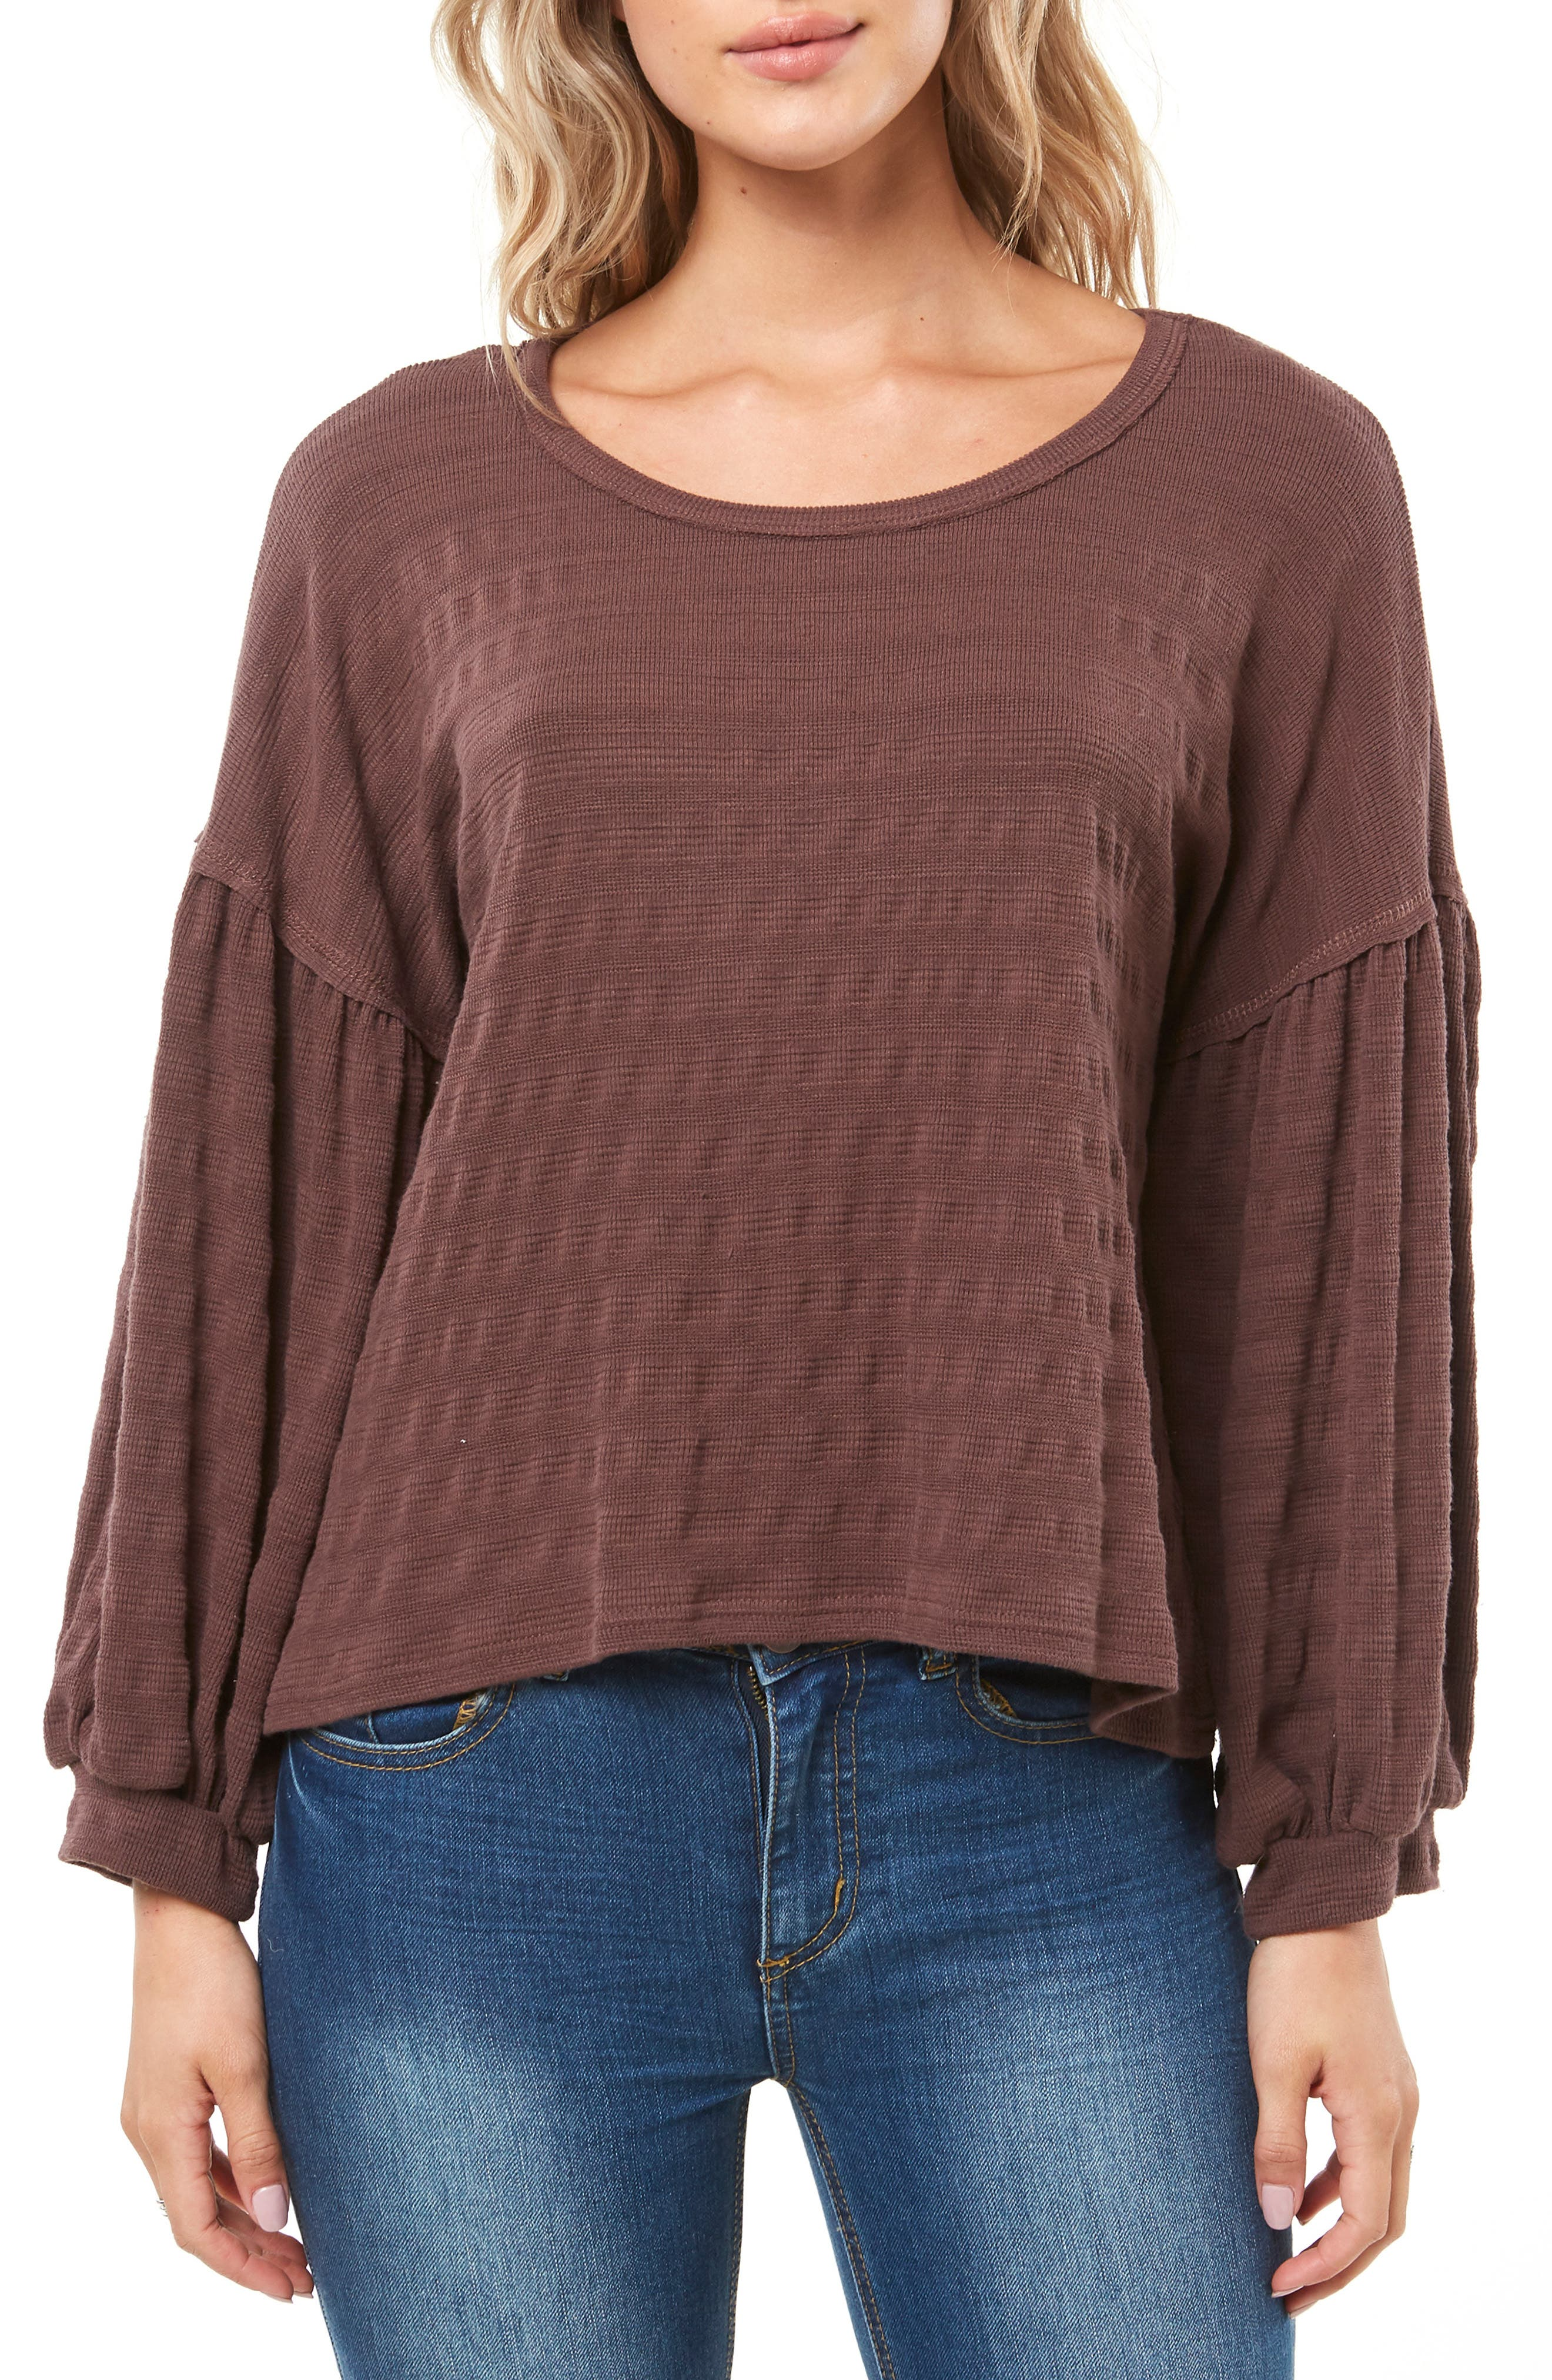 Pacifica Balloon Sleeve Top,                             Main thumbnail 1, color,                             PEPPERCORN